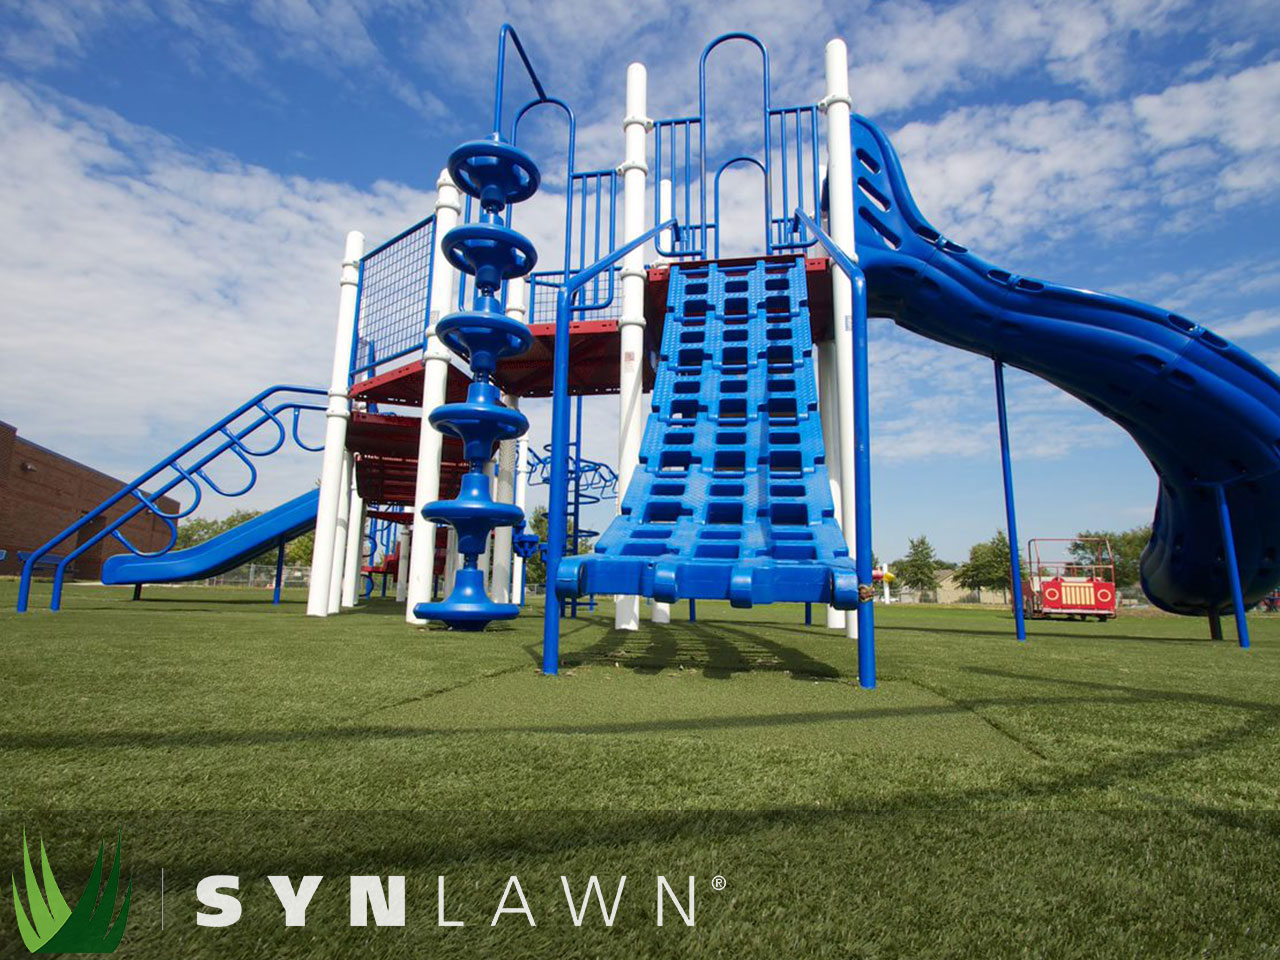 SYNLawn Playground Photo 21